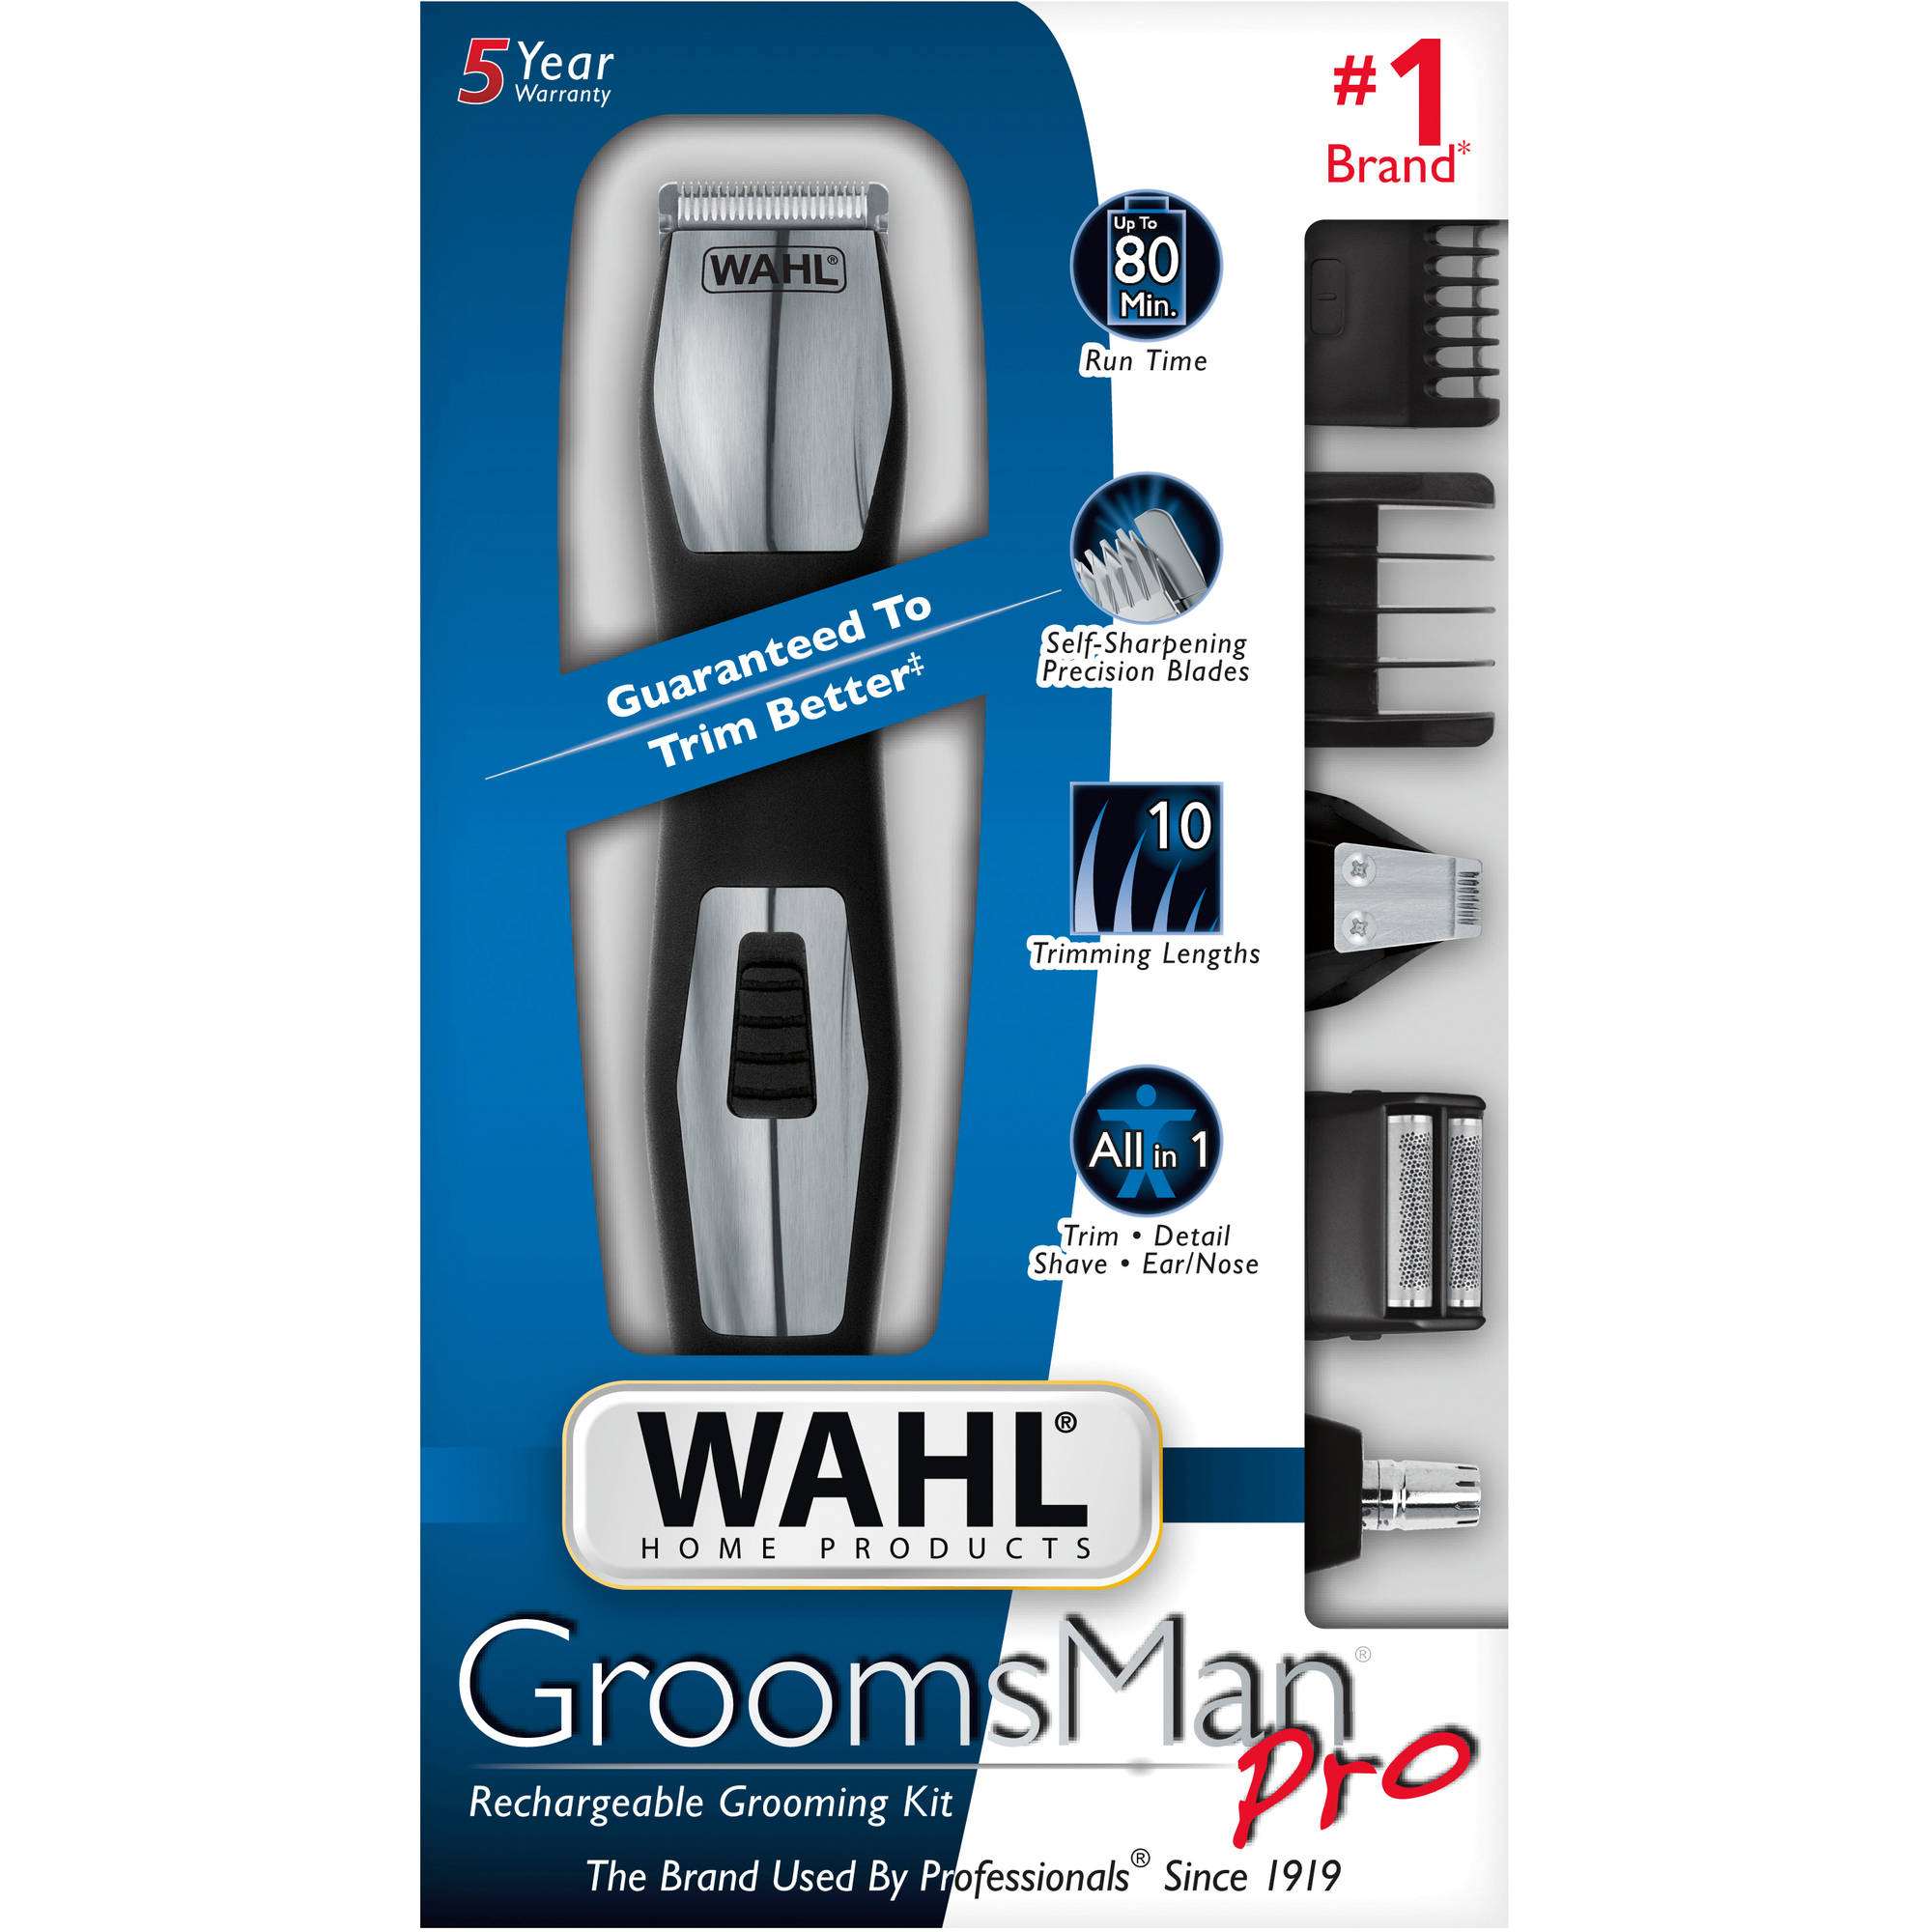 Wahl GroomsmanPro Rechargeable Grooming Kit, 12 pc